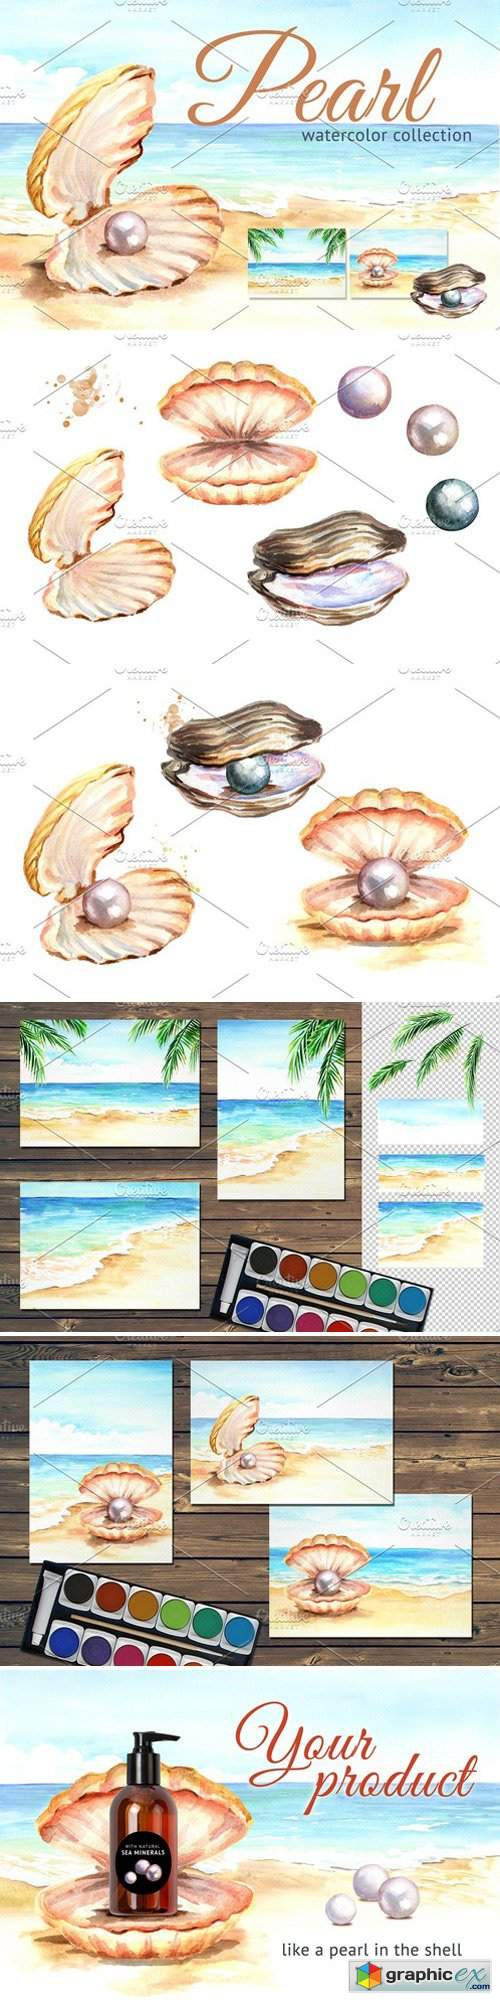 Pearls. Watercolor collection